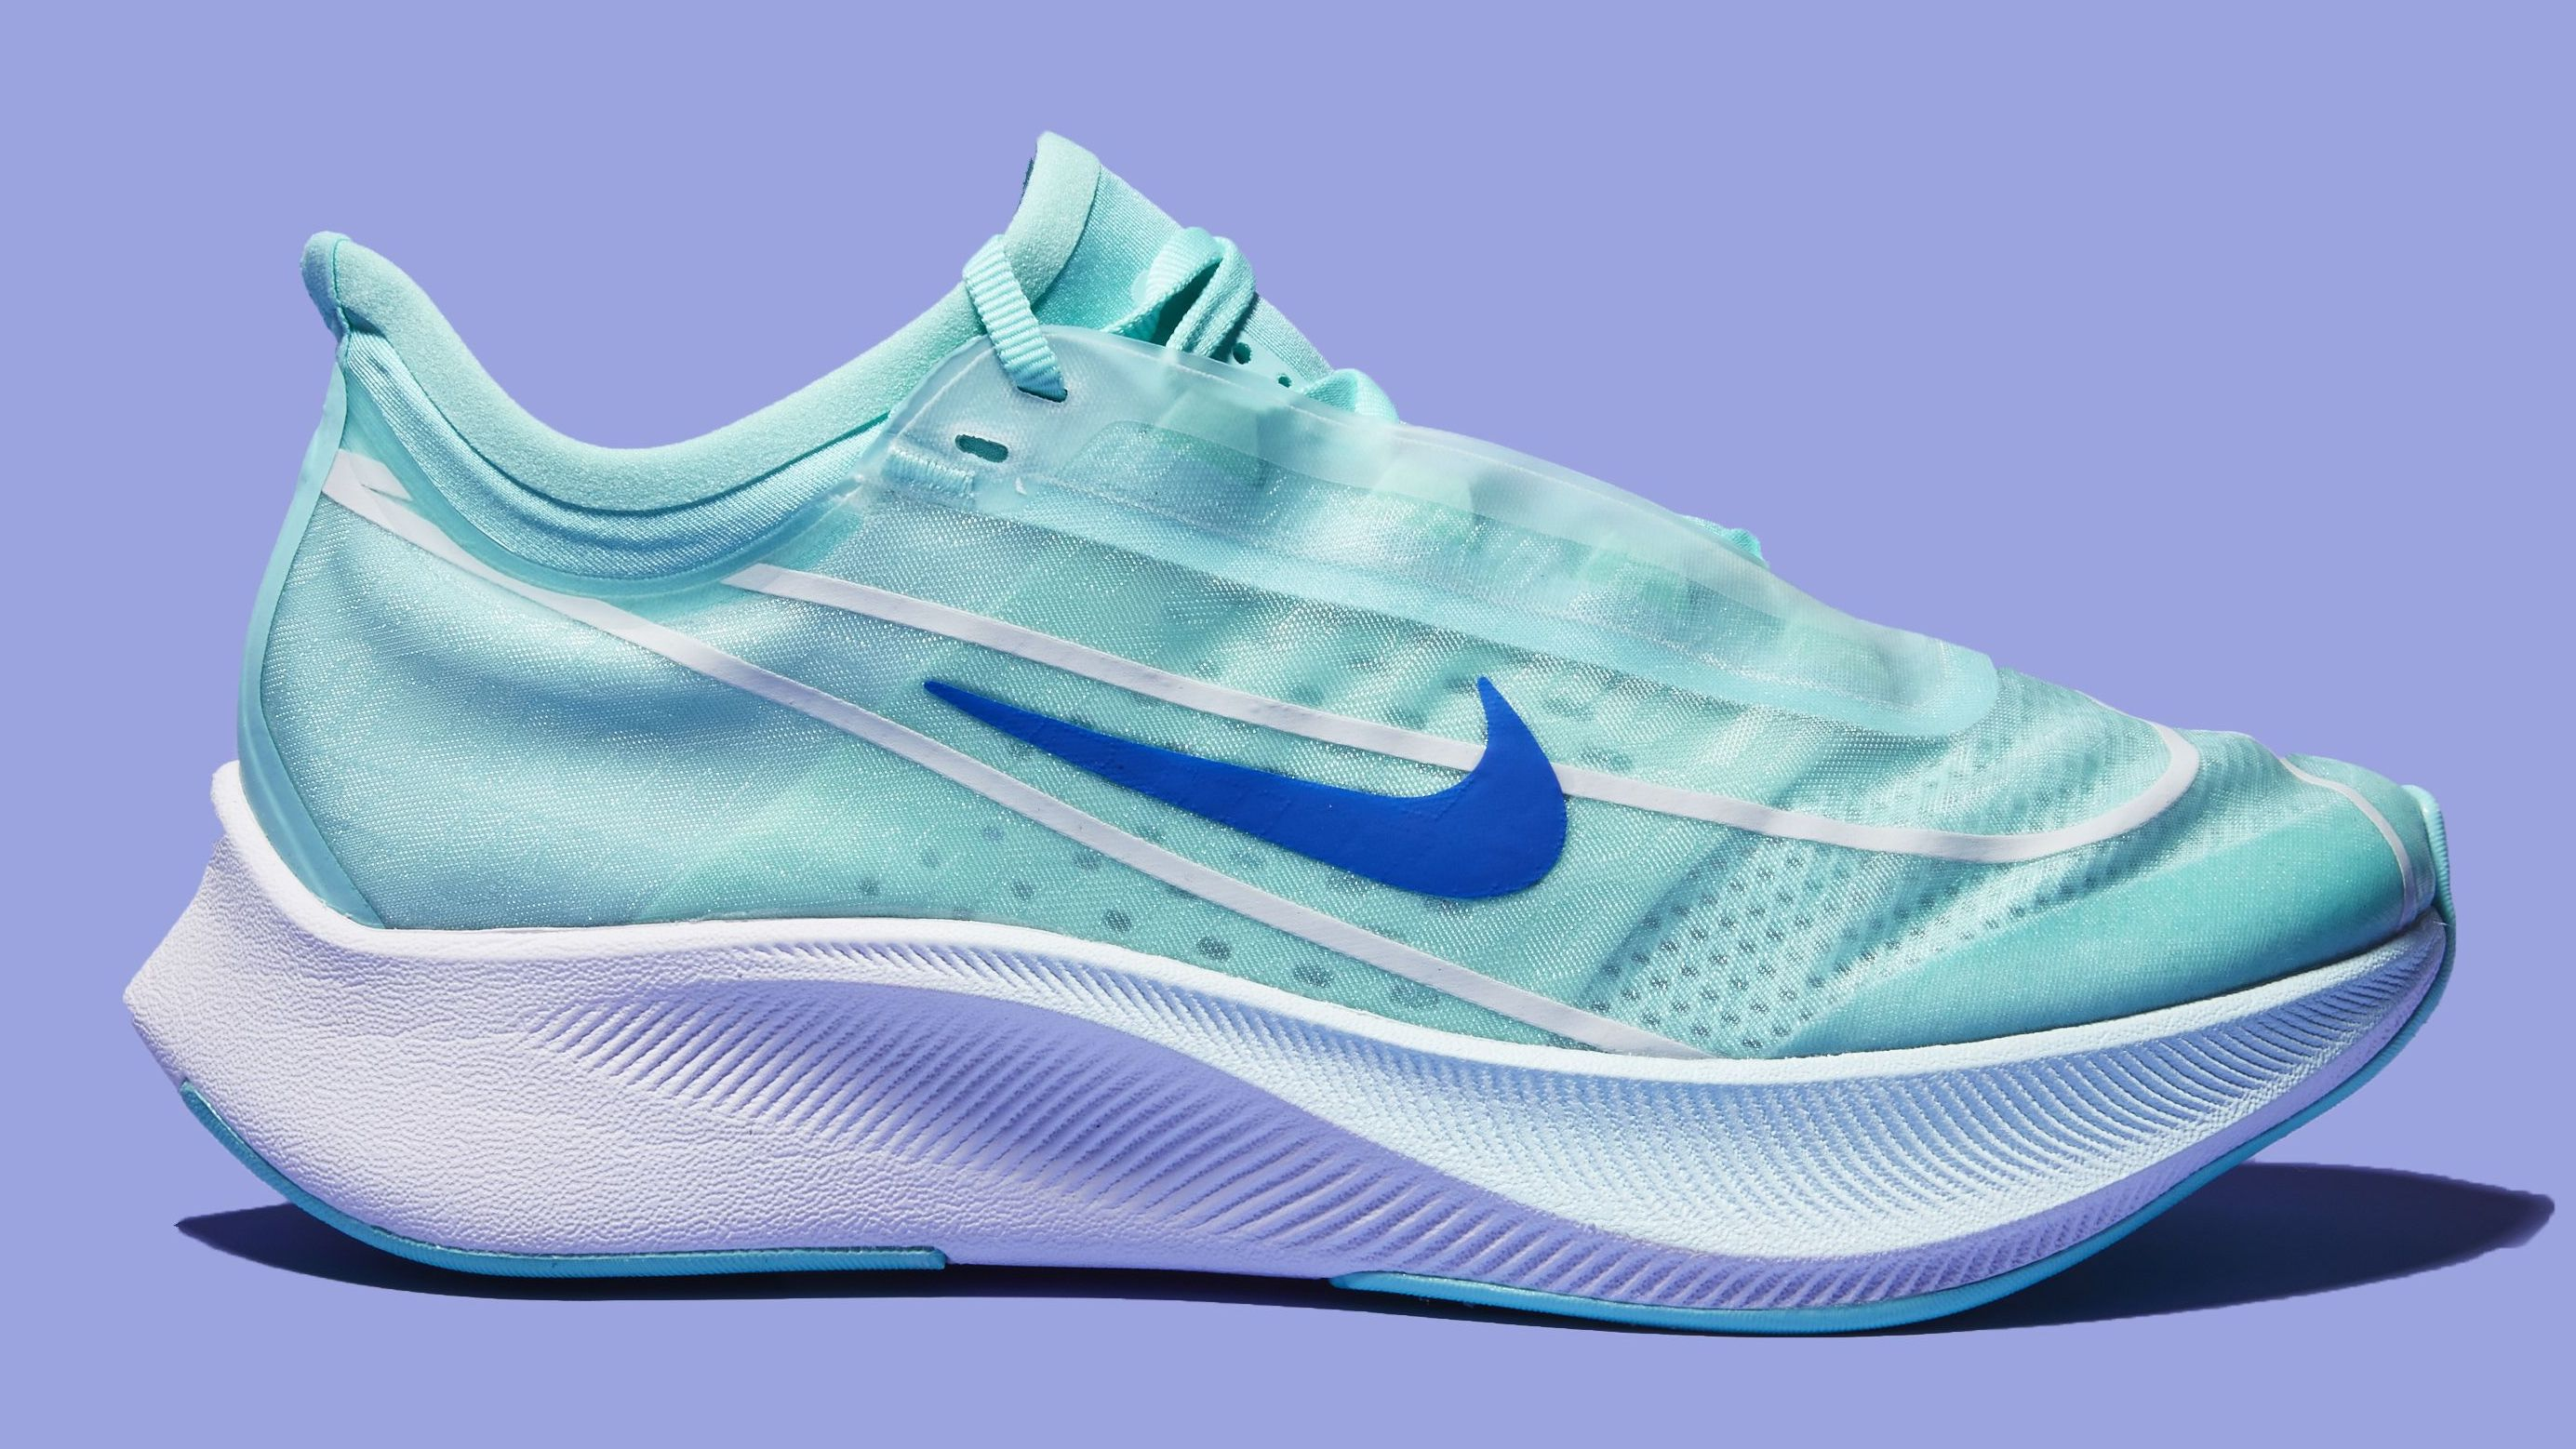 Ajustarse Latón Glamour  Nike Zoom Fly 3 Review | Best Nike Running Shoes 2019